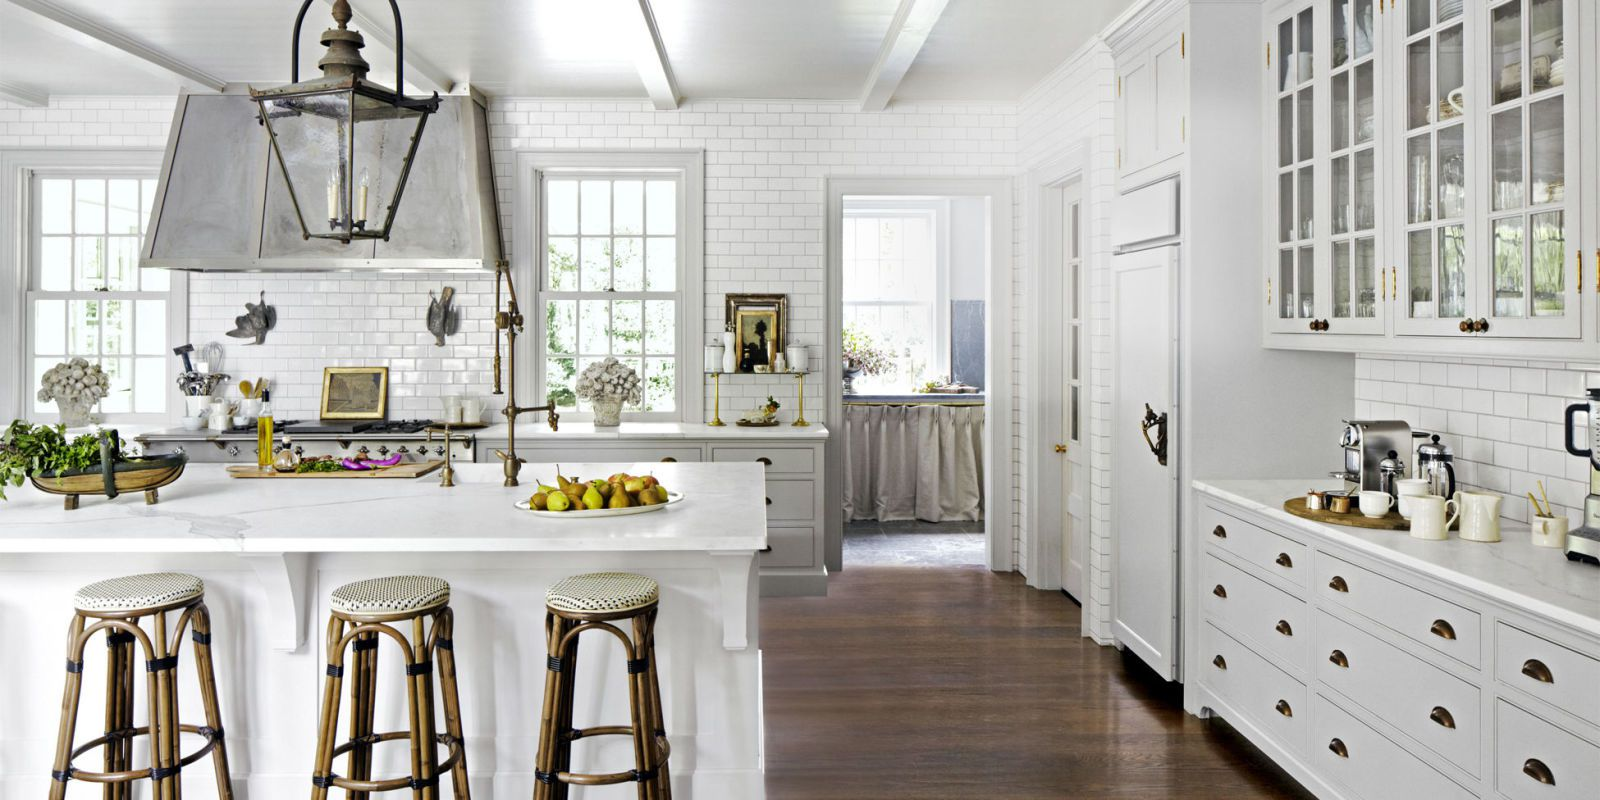 8 beautiful kitchen trends that will be big in 2018 WCBUQNR